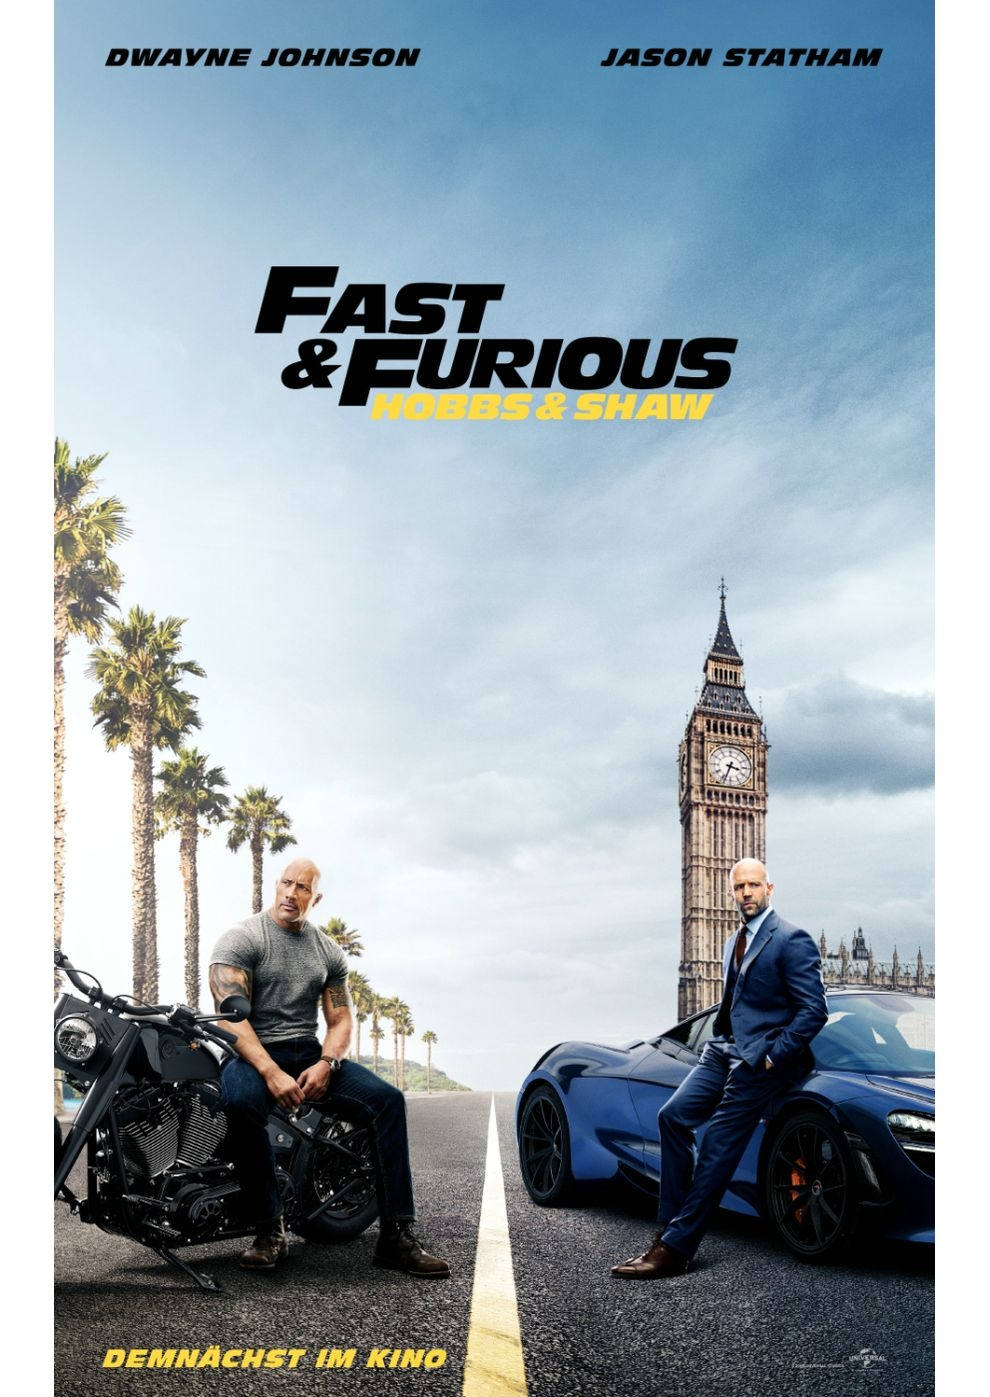 Fast & Furious: Hobbs & Shaw (Poster)